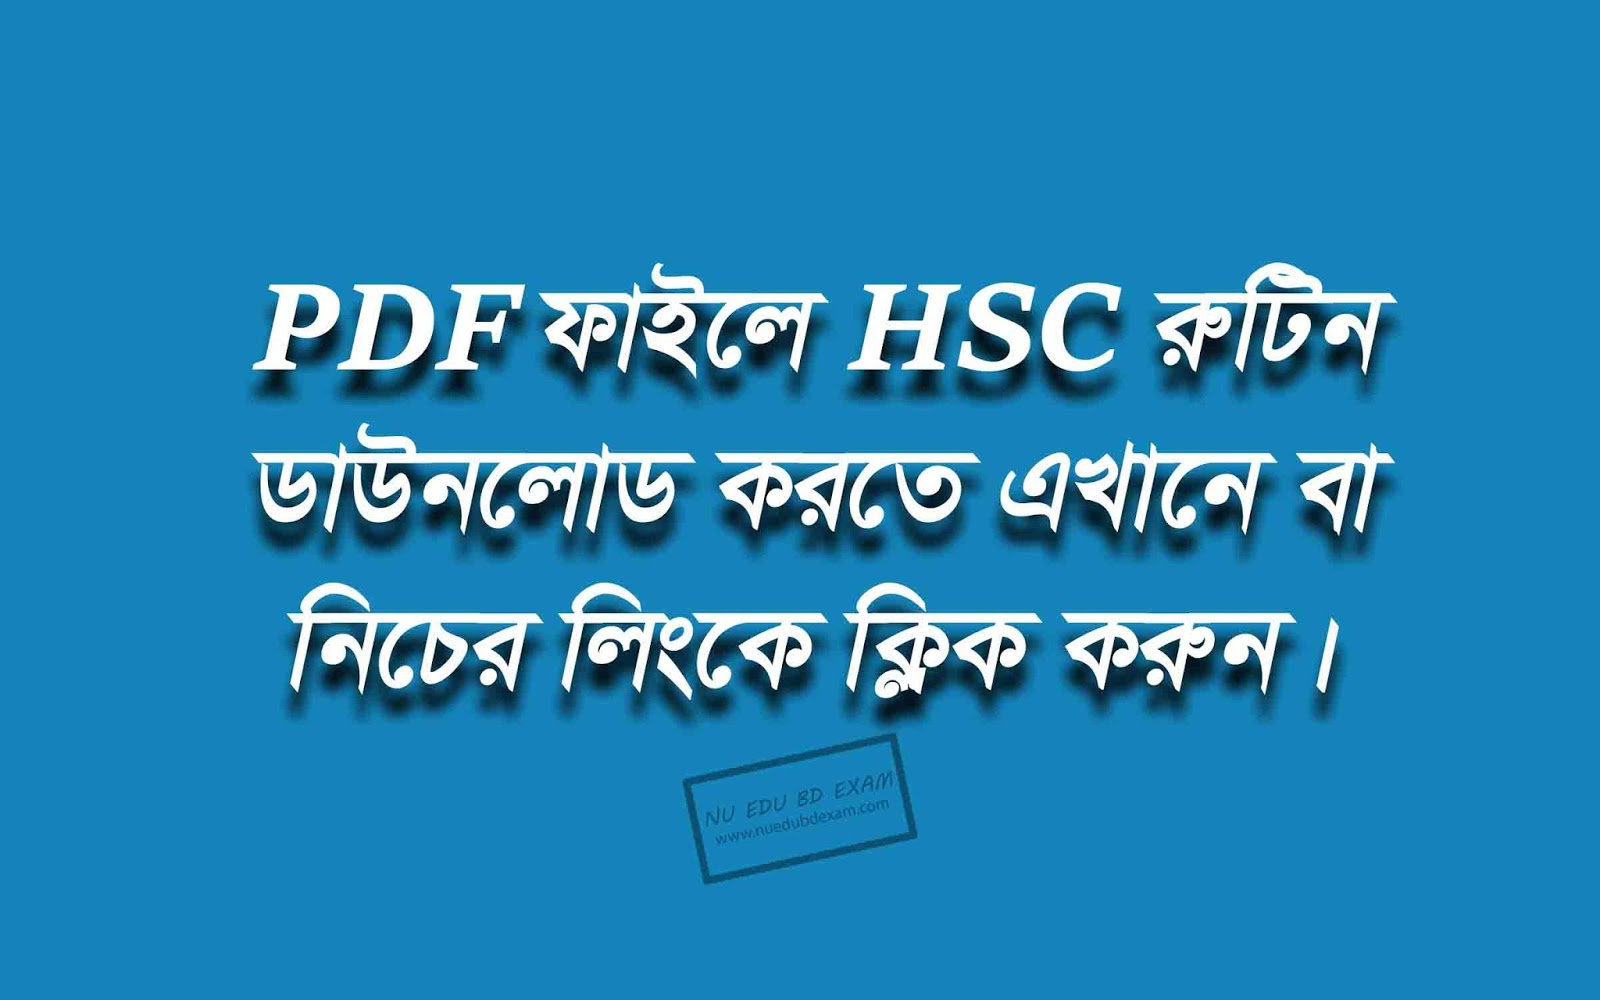 hsc routine 2018 pdf download